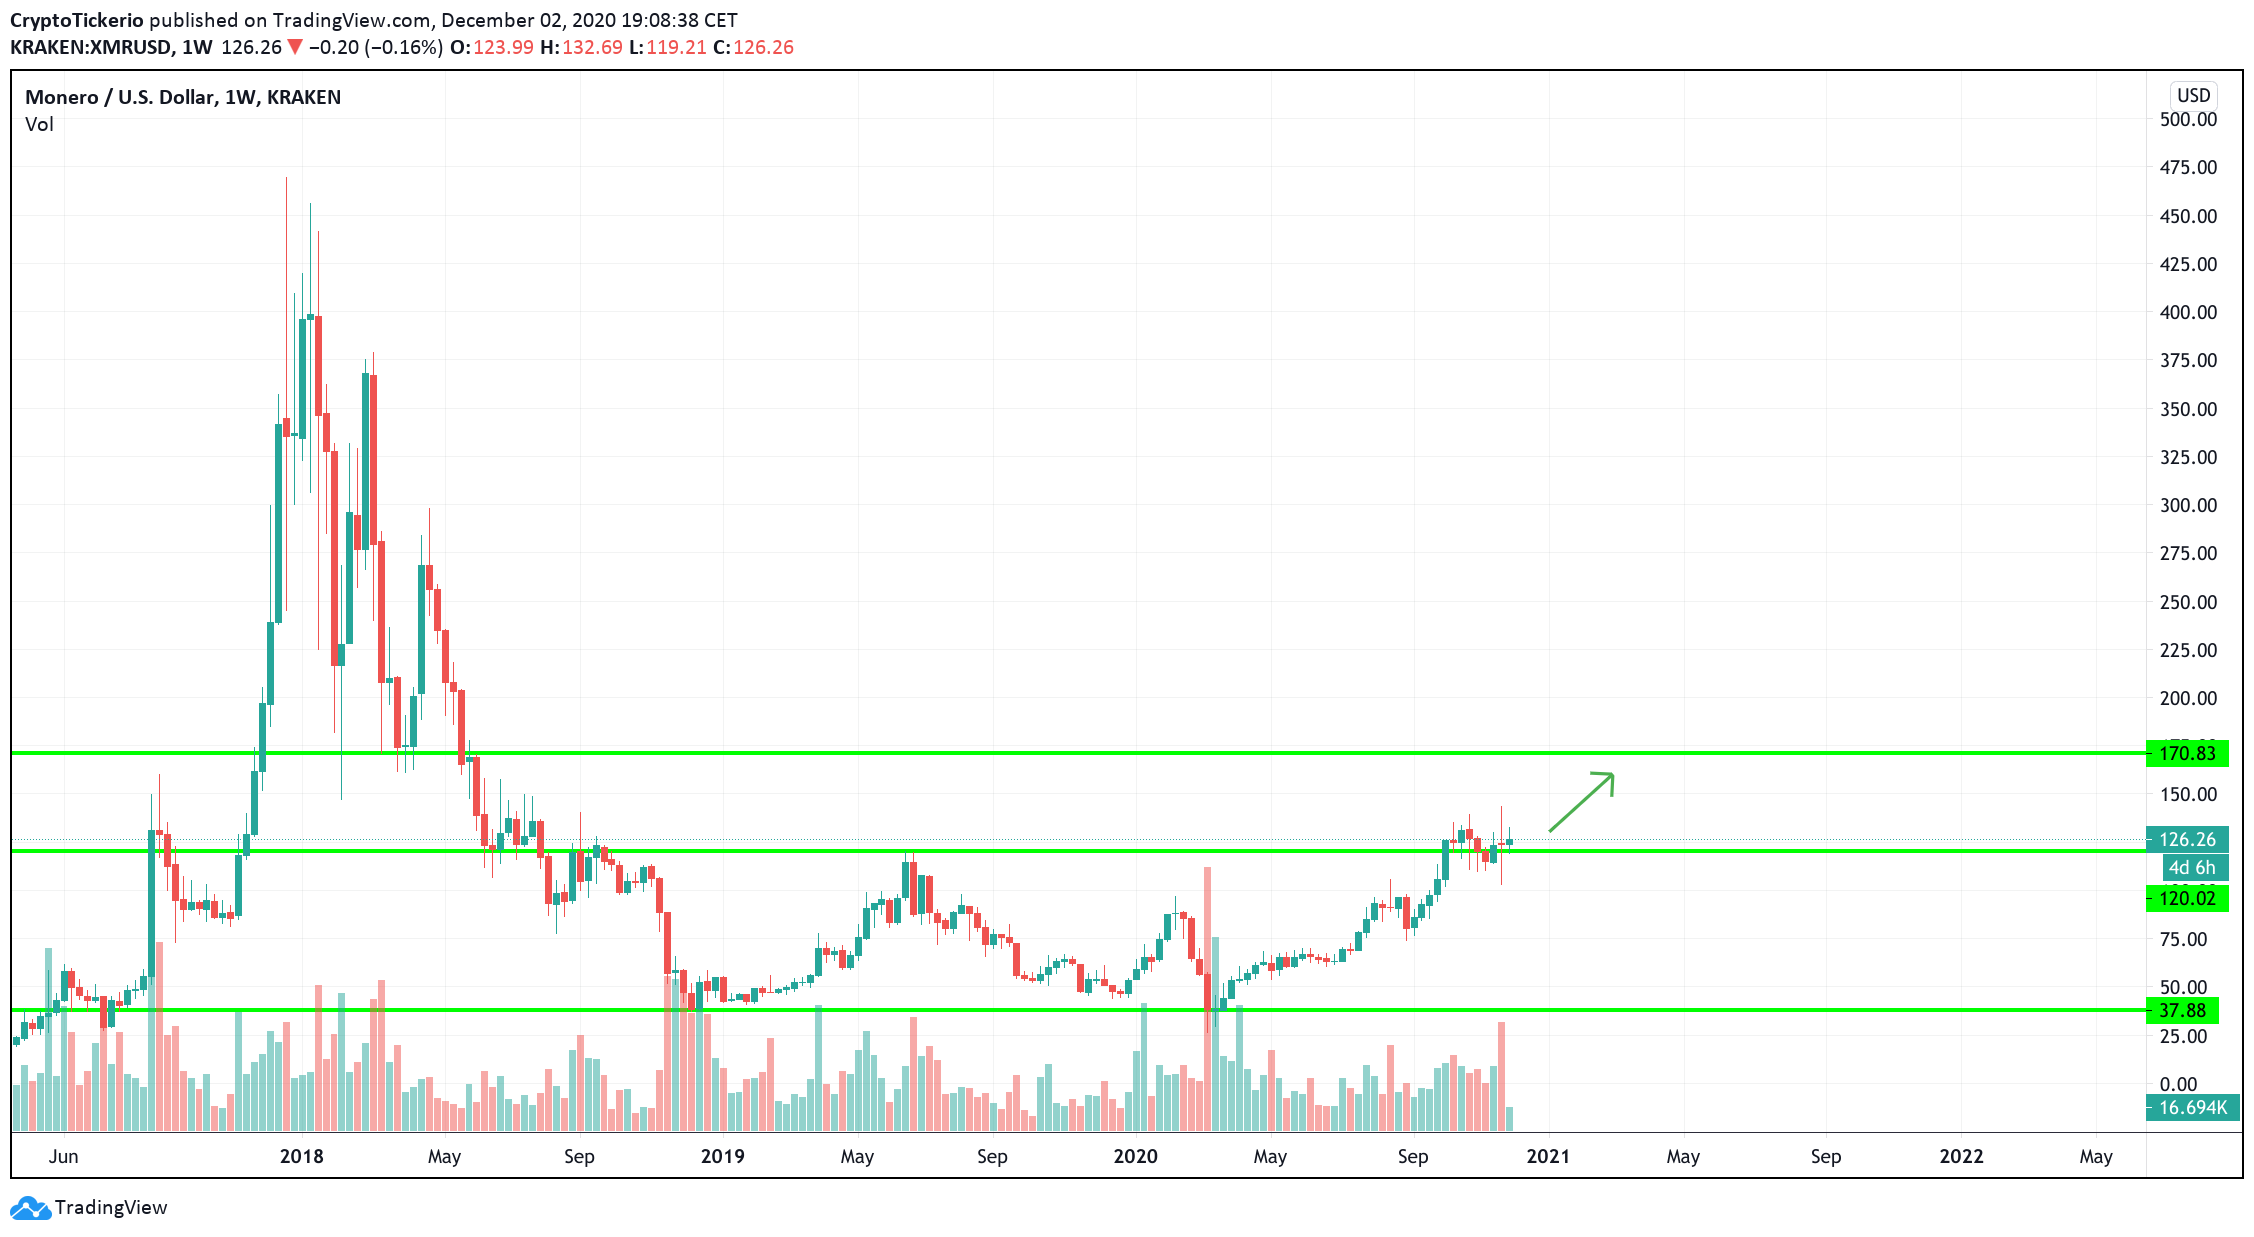 XMR/USD 1-Week chart, potential price increase to a new level in Q1 2021